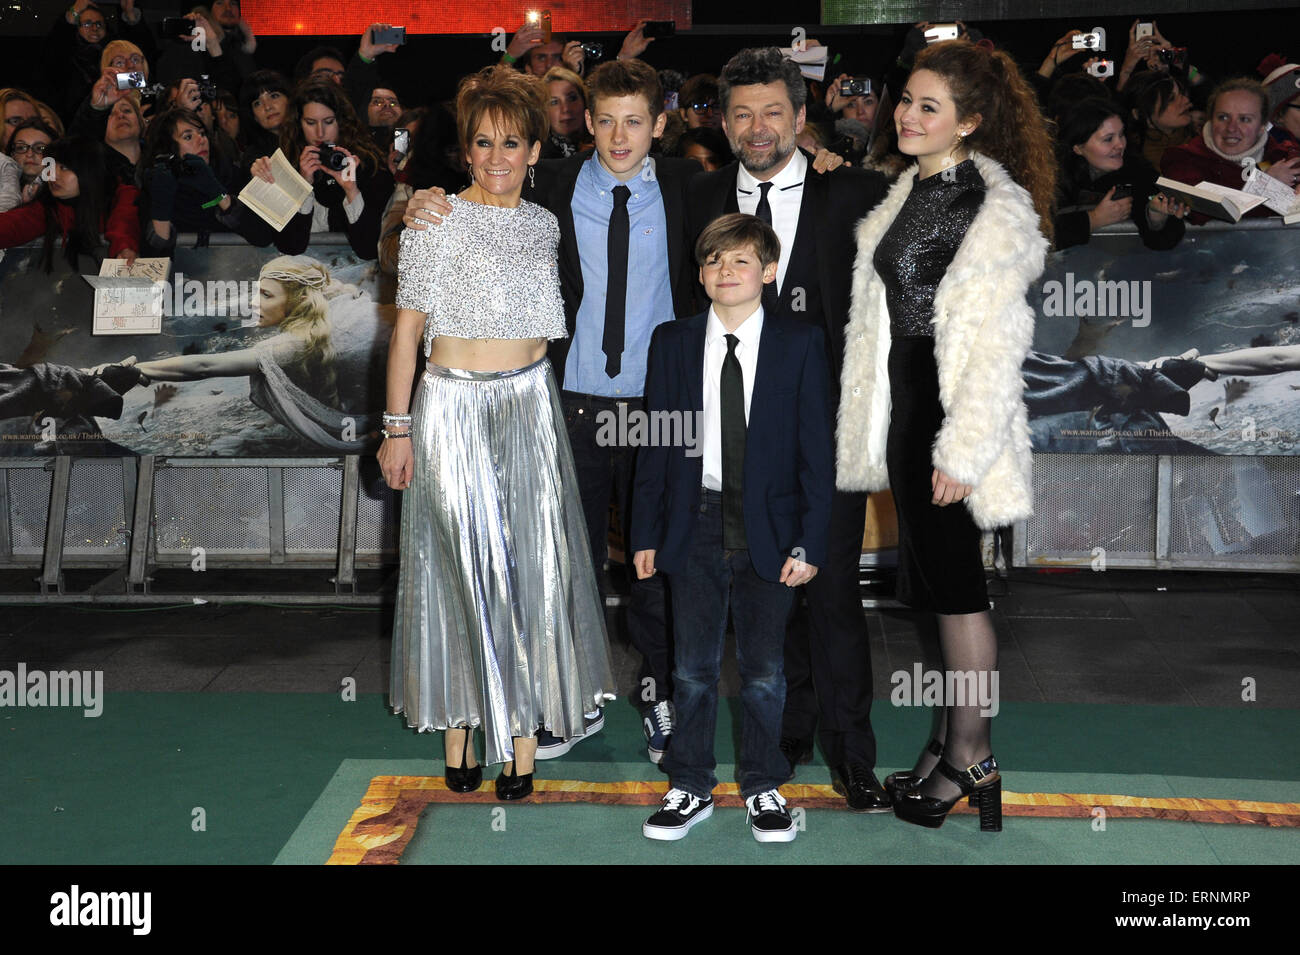 'The Hobbit: The Battle of the Five Armies' world premiere - Arrivals  Featuring: Andy Serkis Where: London, - Stock Image